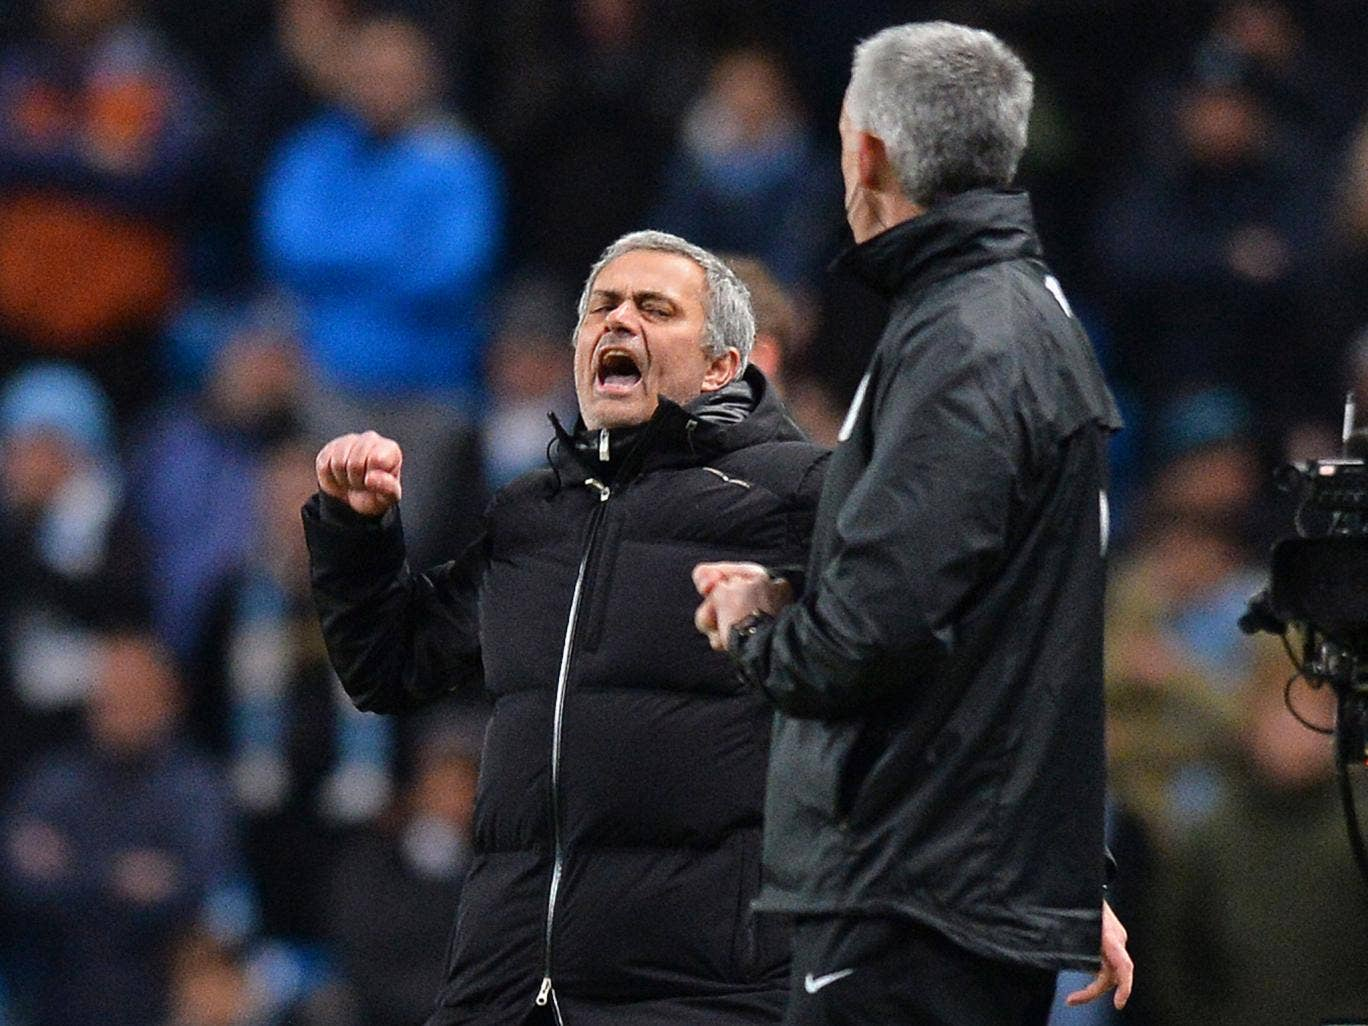 Jose Mourinho celebrates victory against Manchester City on Monday night